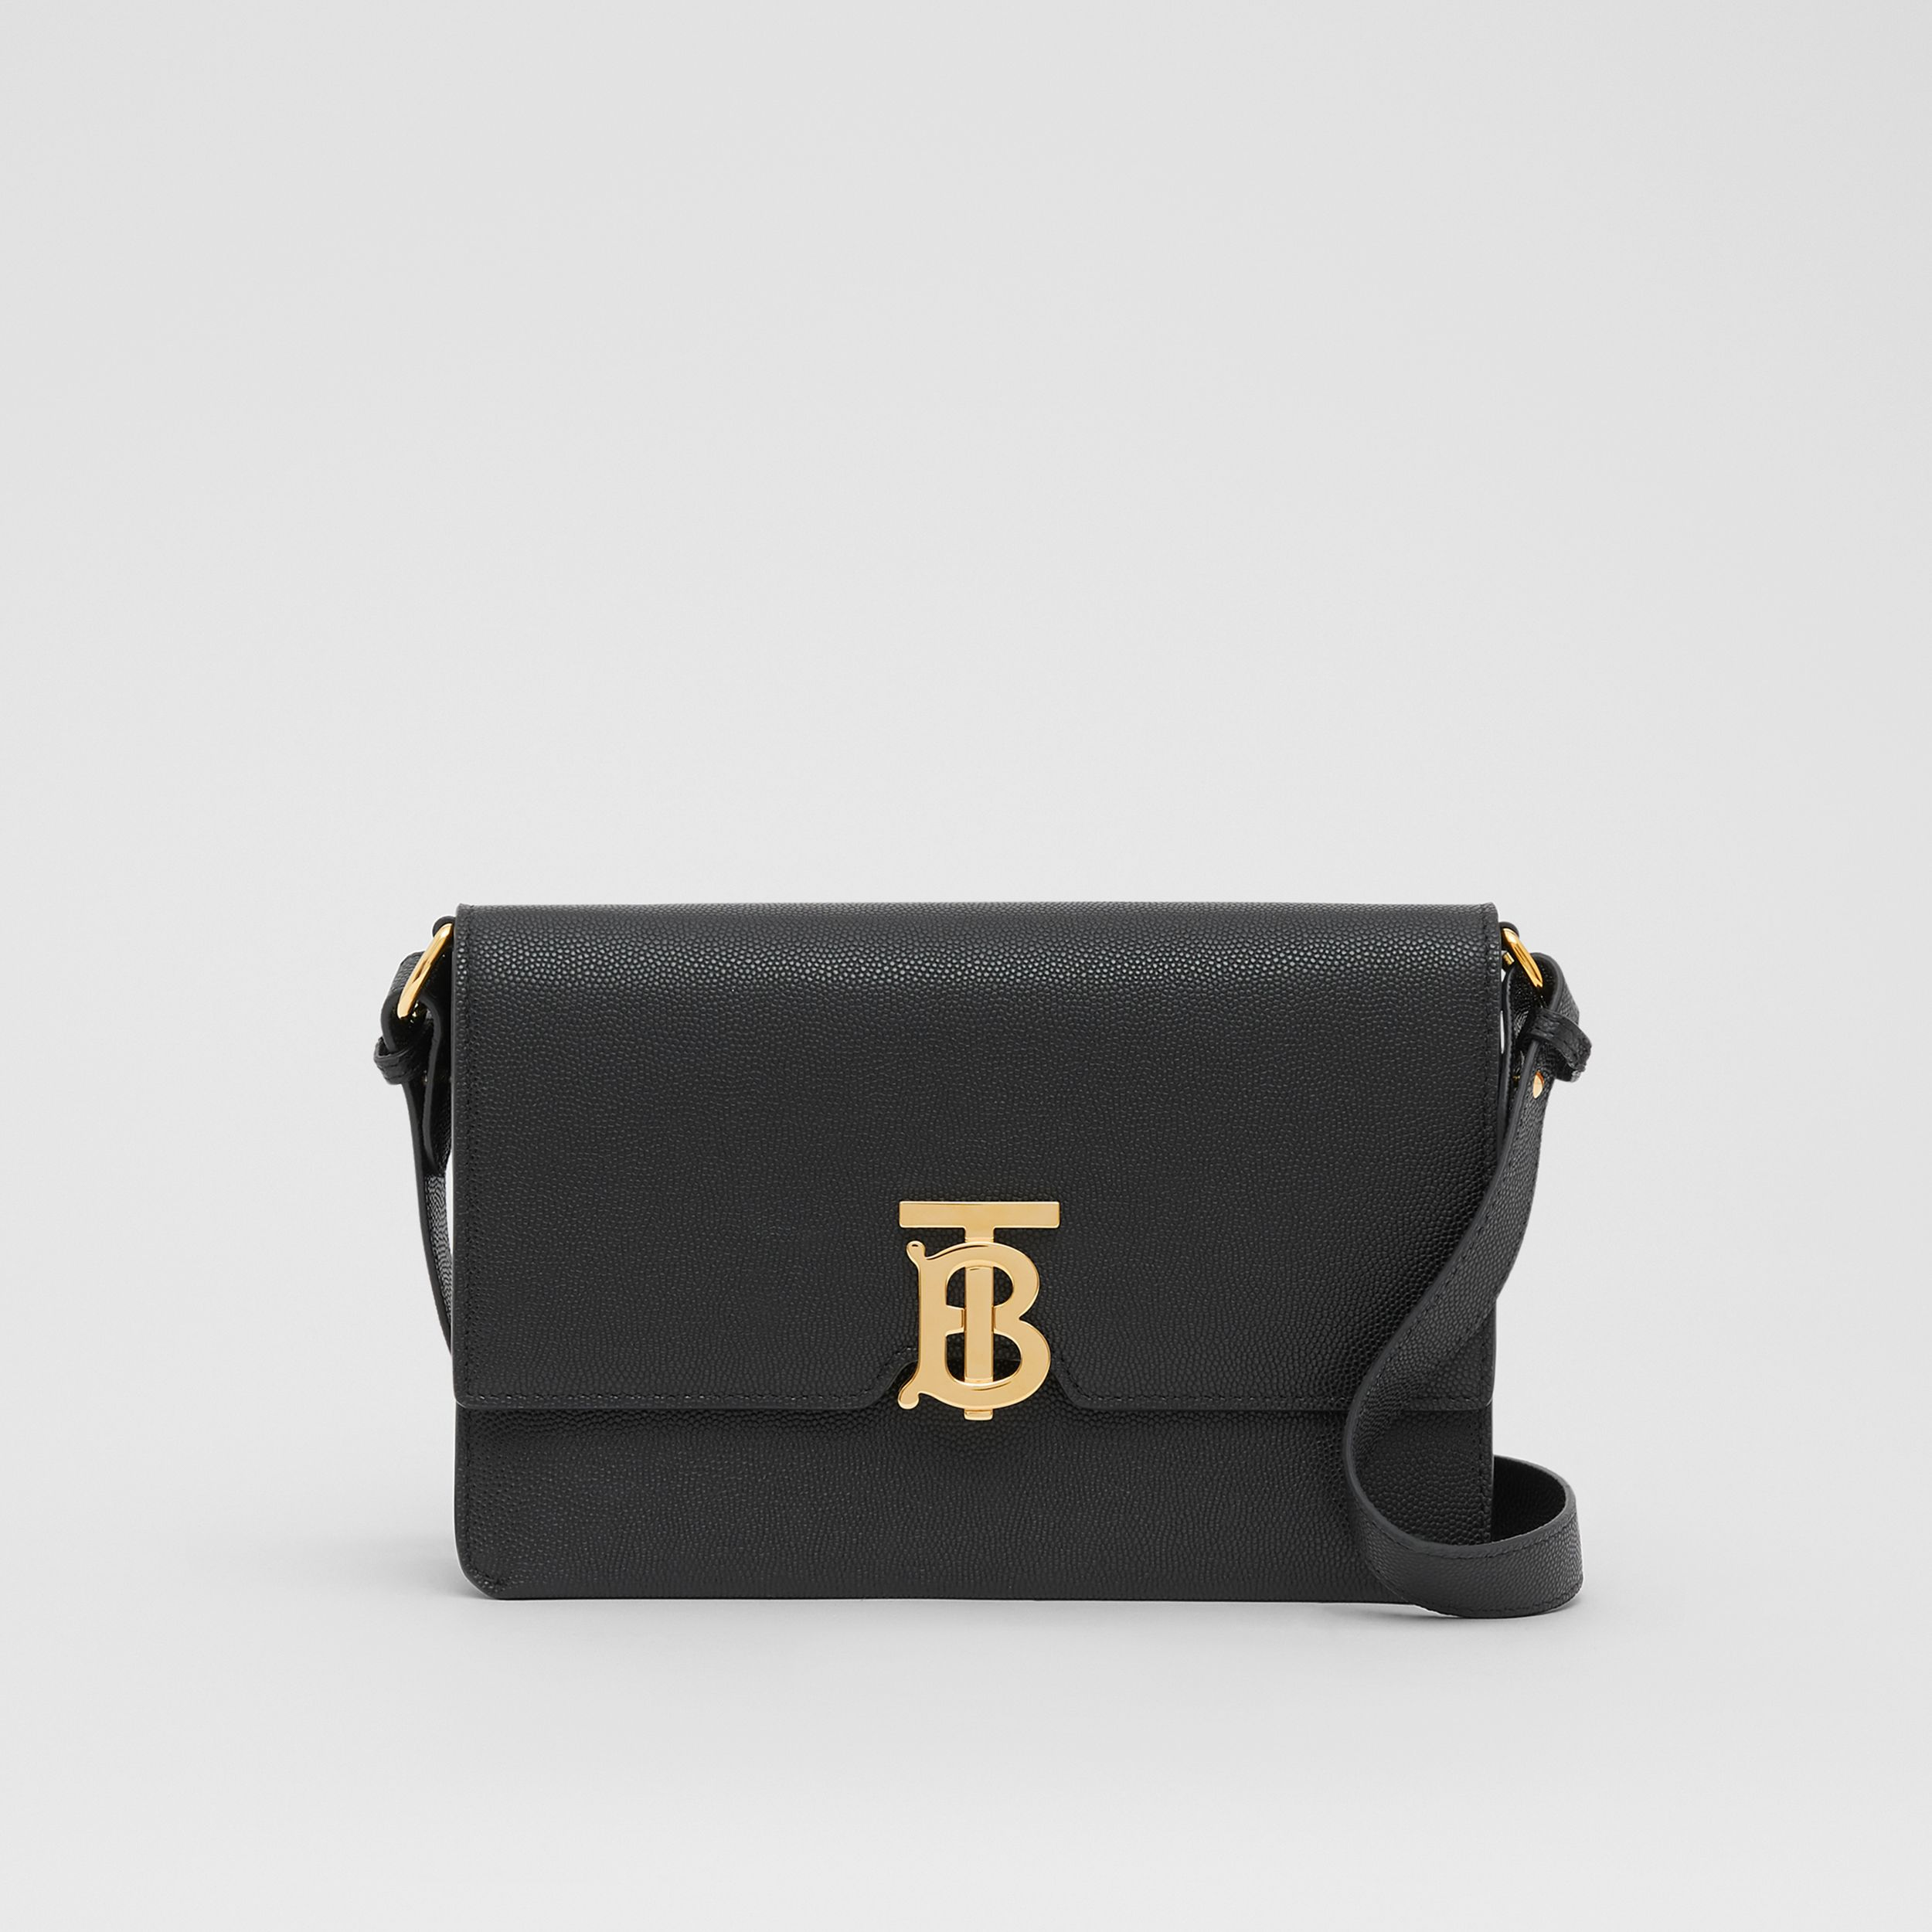 Small Monogram Motif Leather Crossbody Bag in Black - Women | Burberry - 1